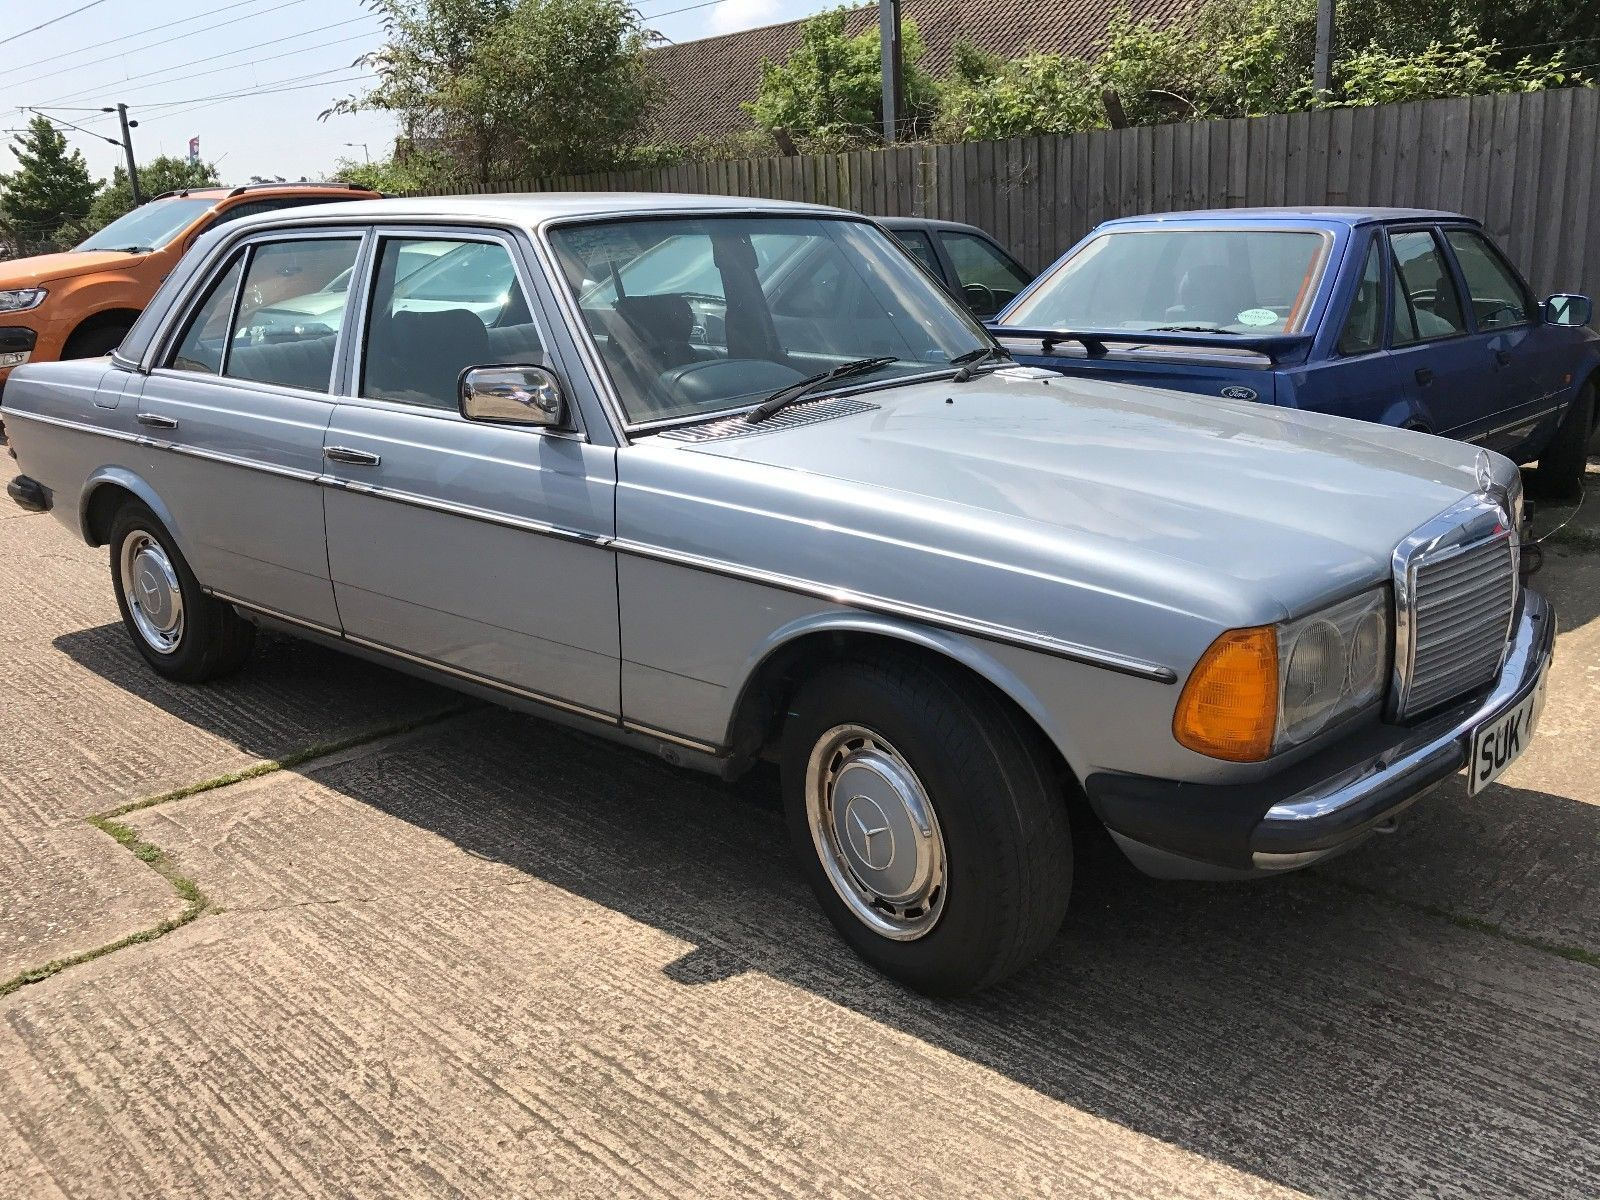 eBay: Classic W123 Mercedes 230E 4 Door Saloon Rare Manual With A/C 1983  Only 4 Owners